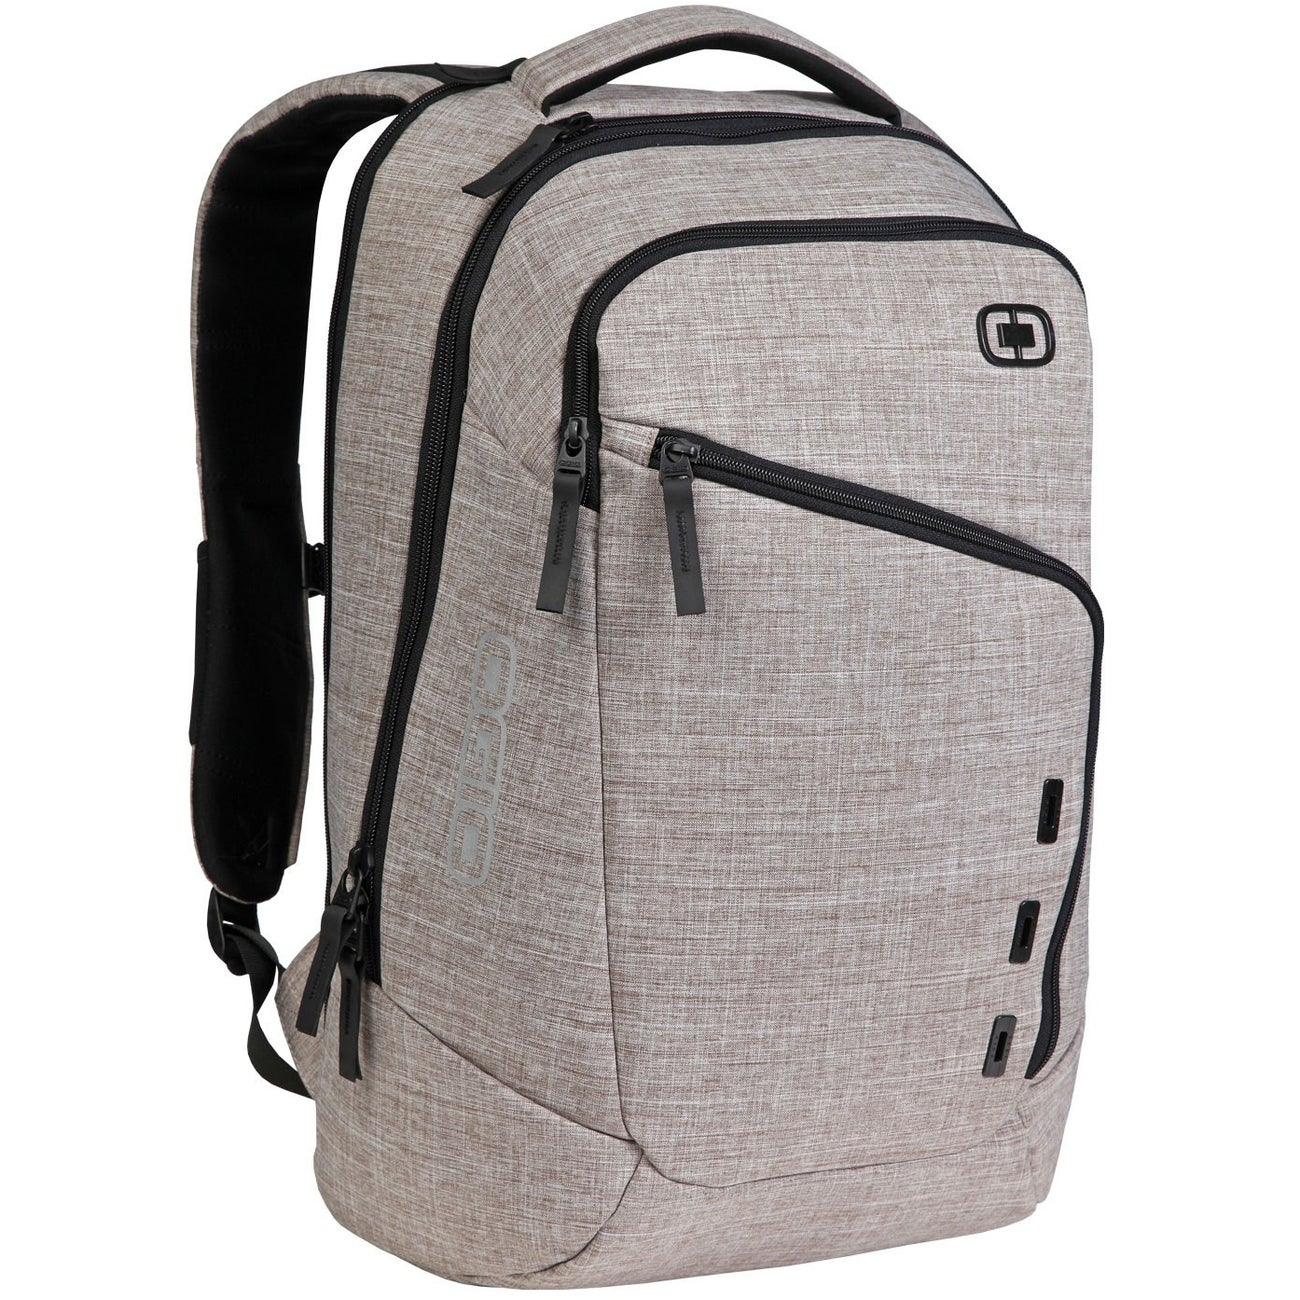 "Ogio NEWT II S Carrying Case (Backpack) for 17"" Notebook"